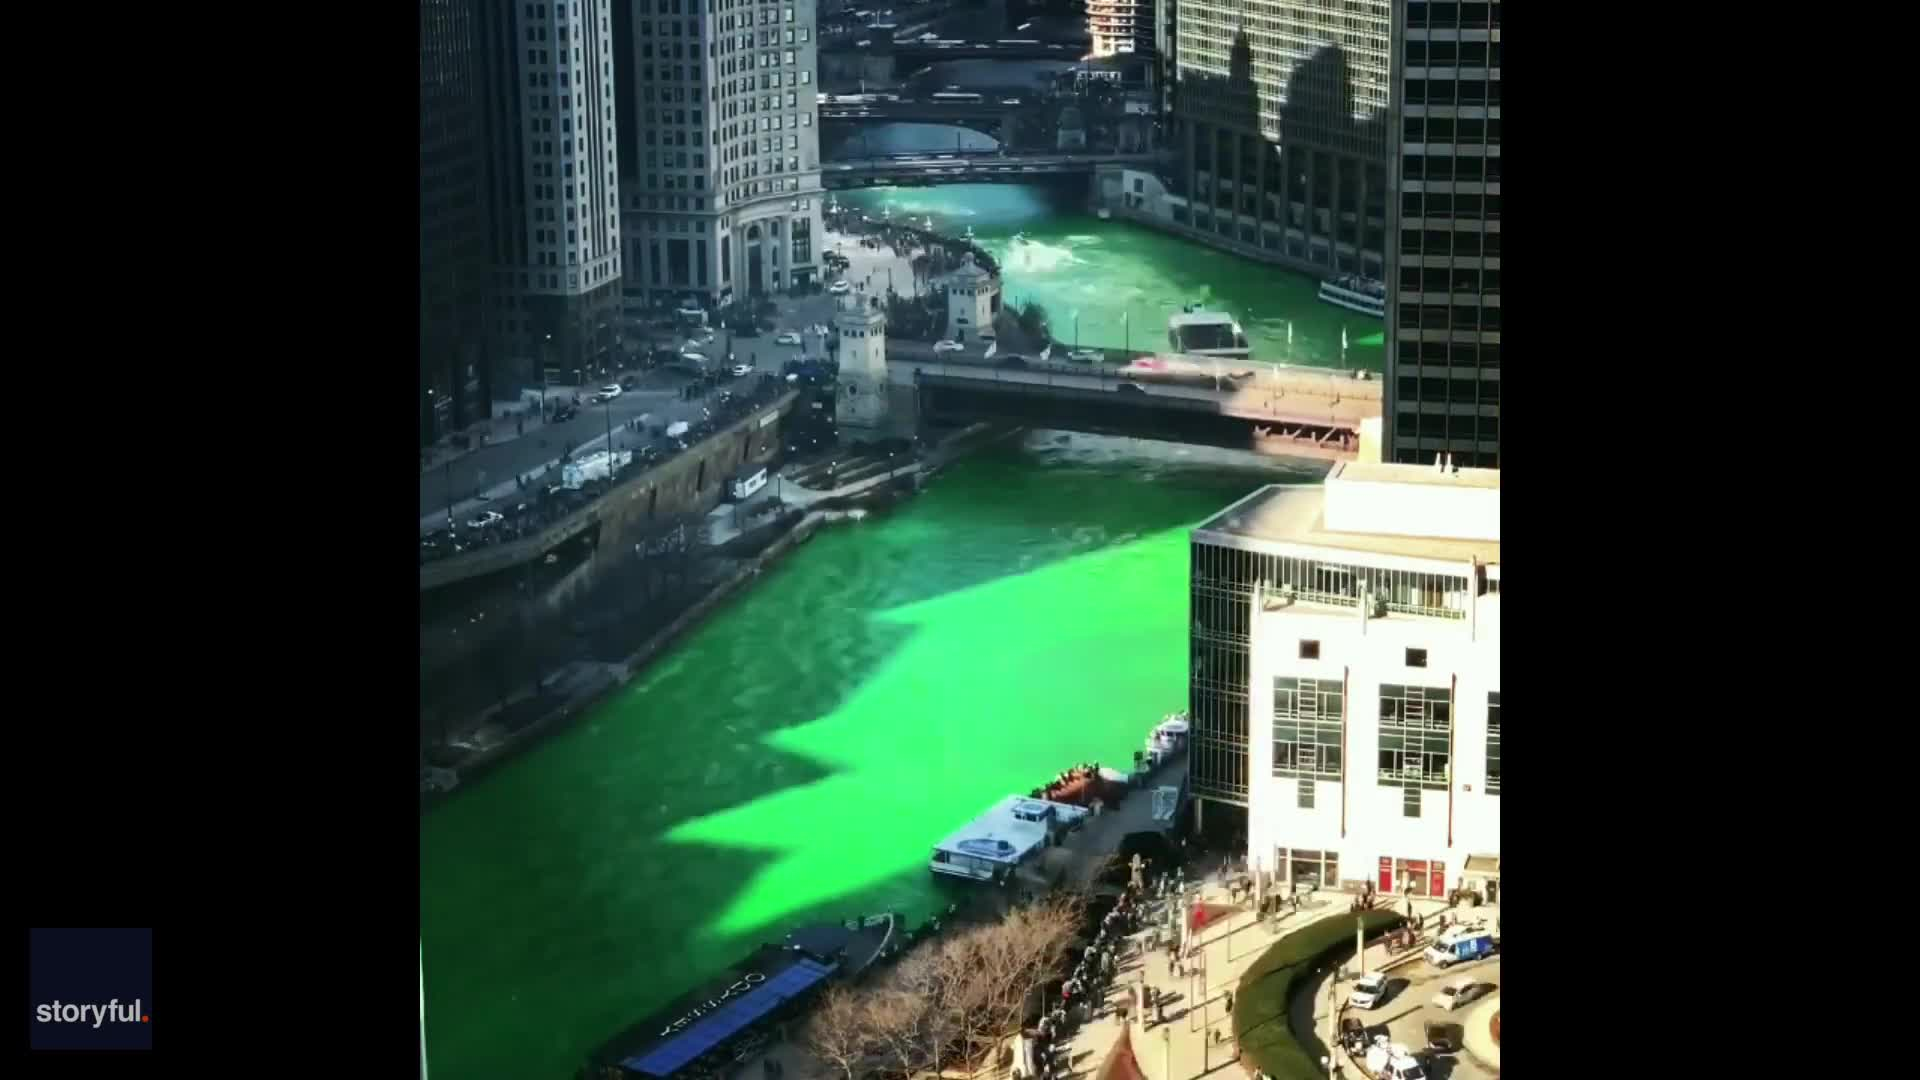 None - Chicago River Dyed Green For St. Patrick's Day